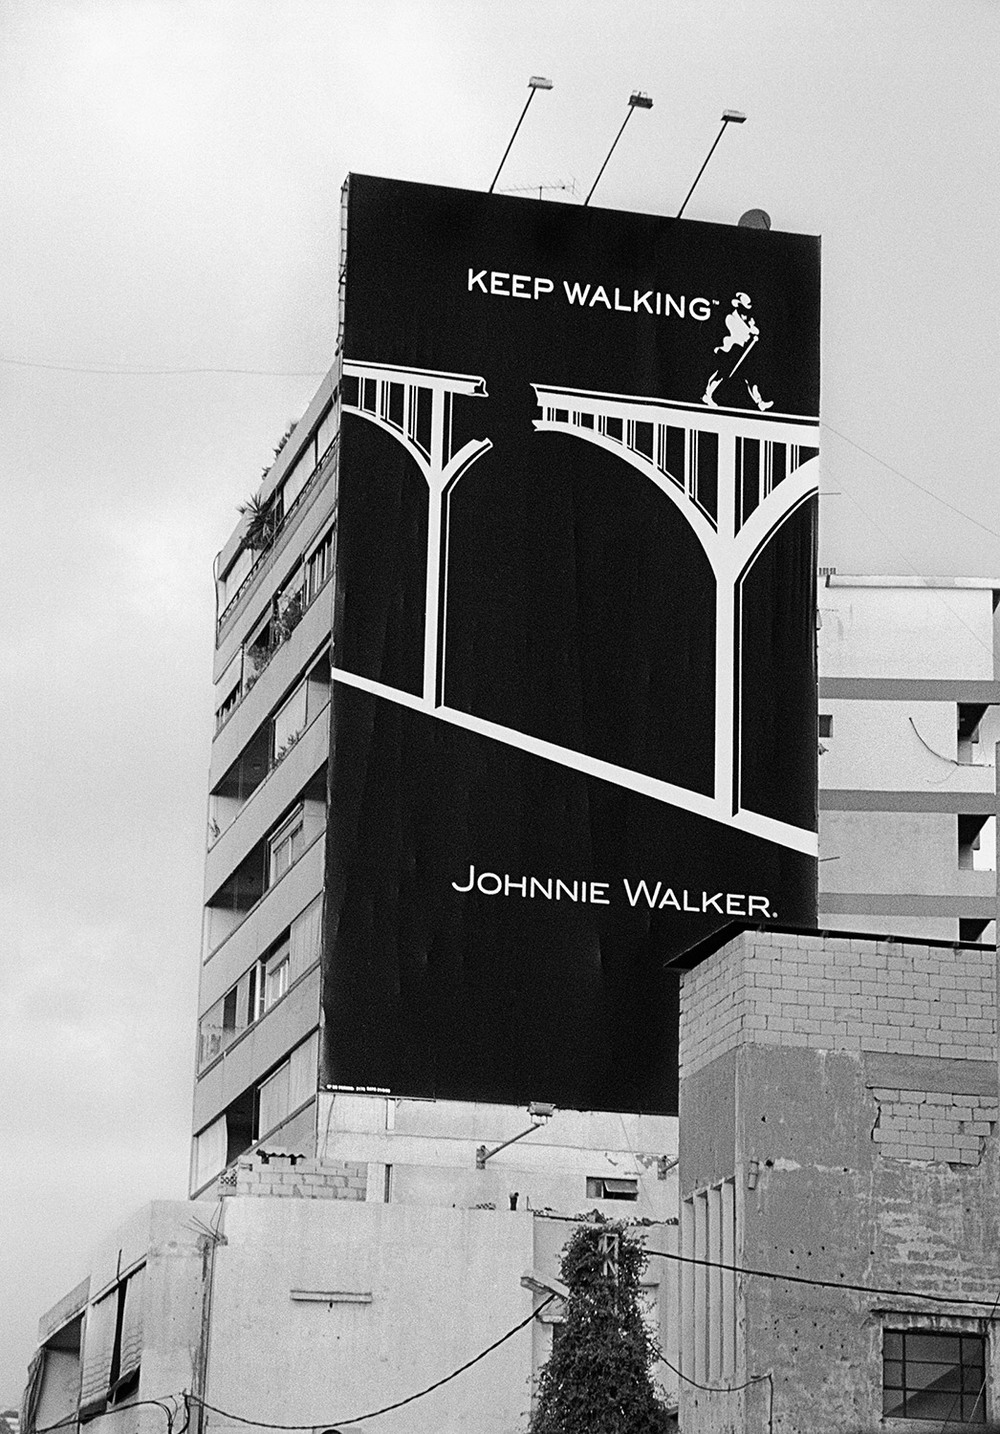 Johnnie Walker Post-War Advertisement. After 2006 Conflict. Beirut, Lebanon,  2006 - 2014  Archival Fiber Inkjet Print  10 x 15.5 inches